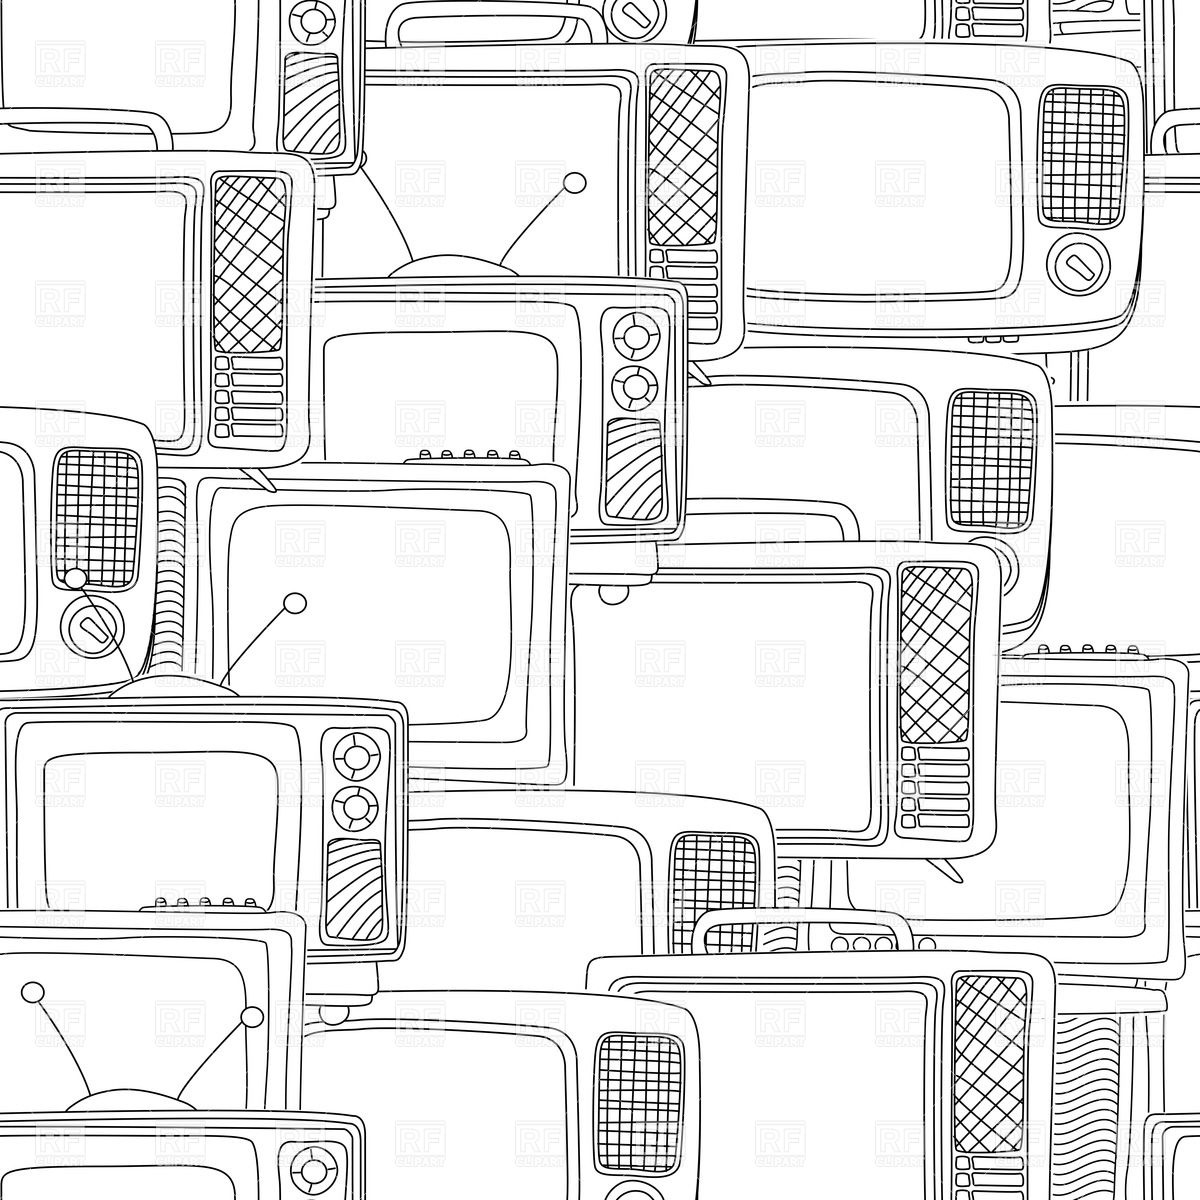 wallpaper with television sets in black and white Backgrounds 1200x1200